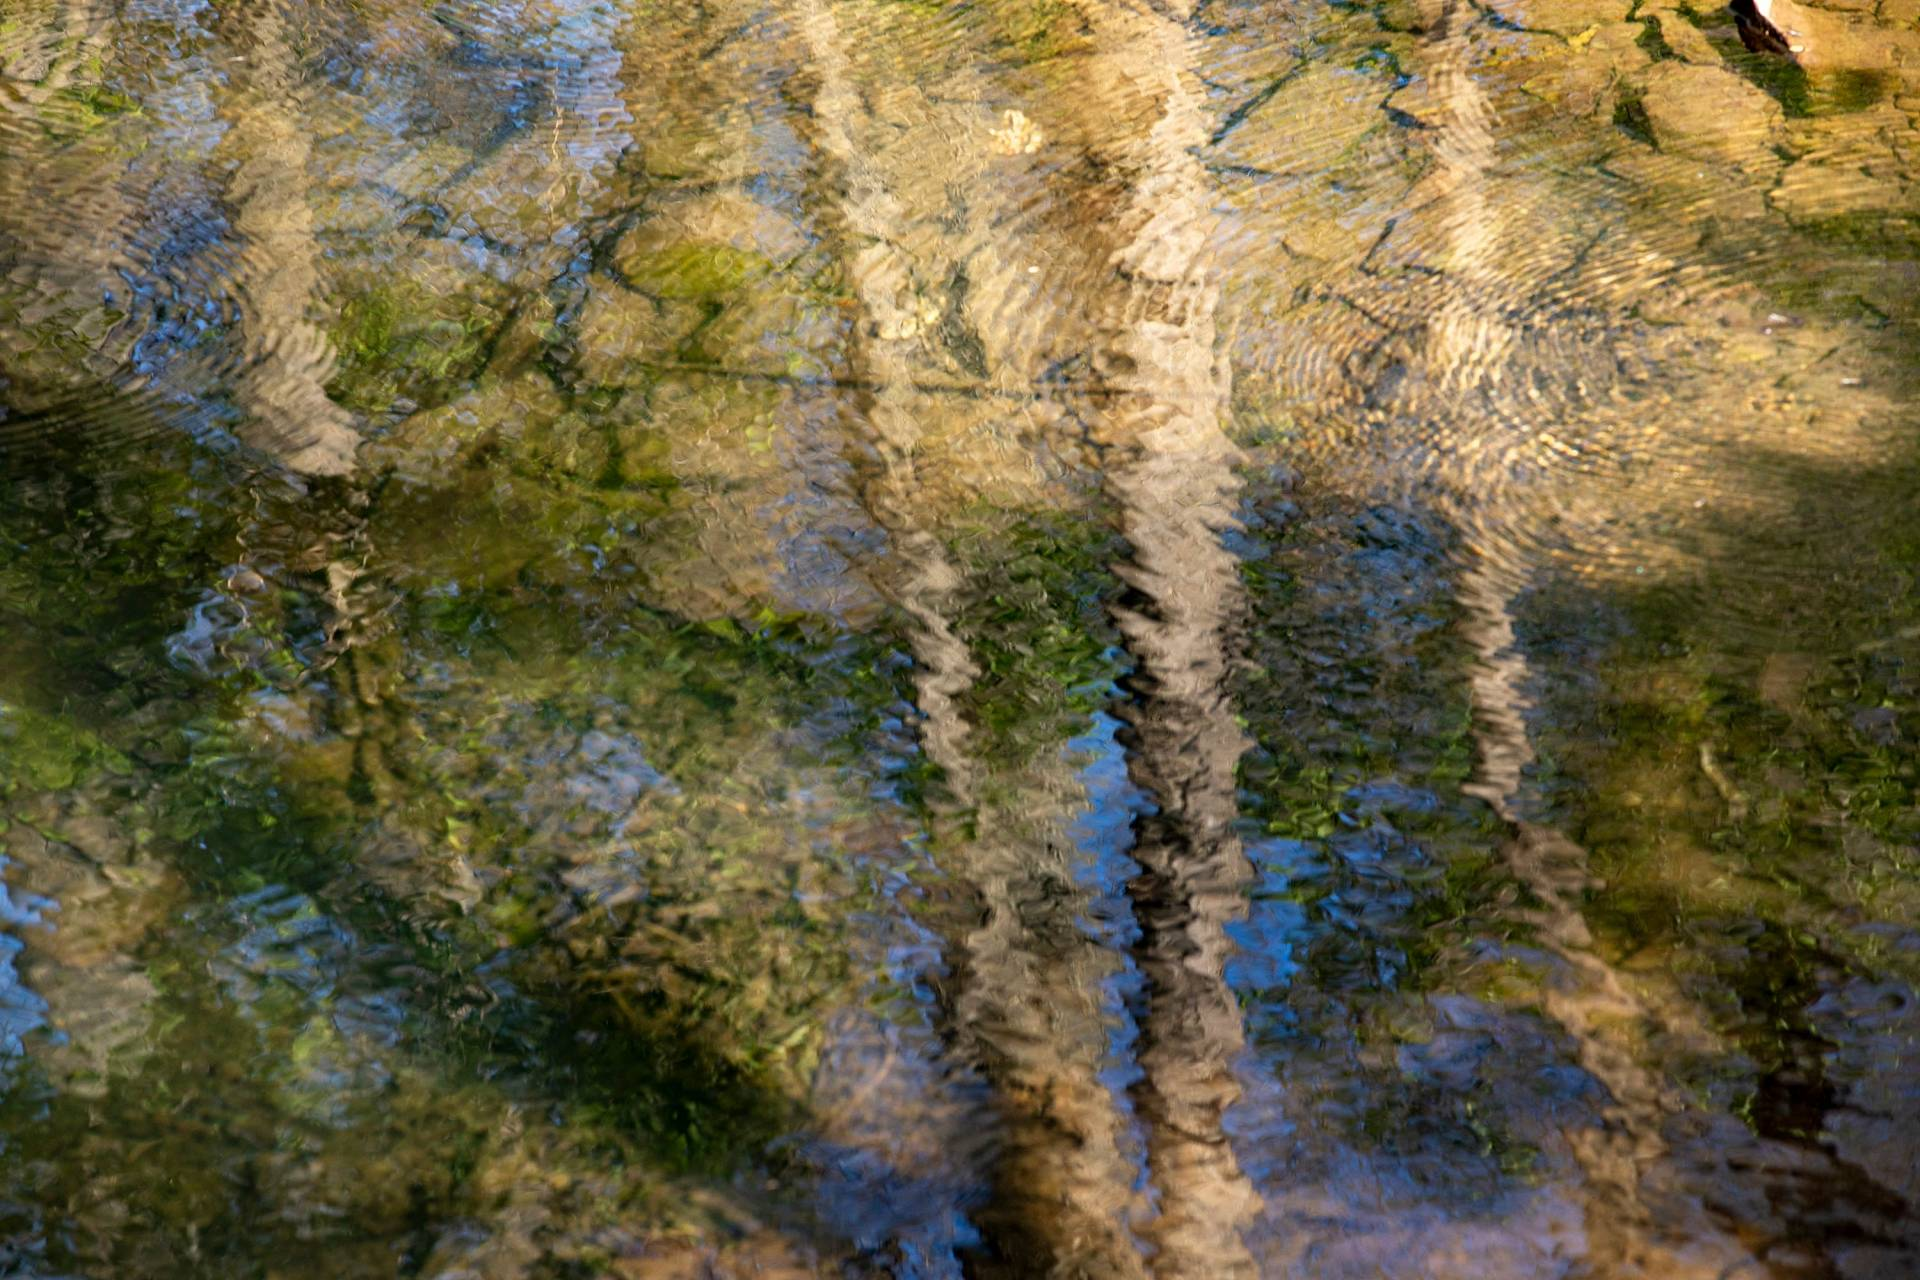 Refections of trees in rippling water